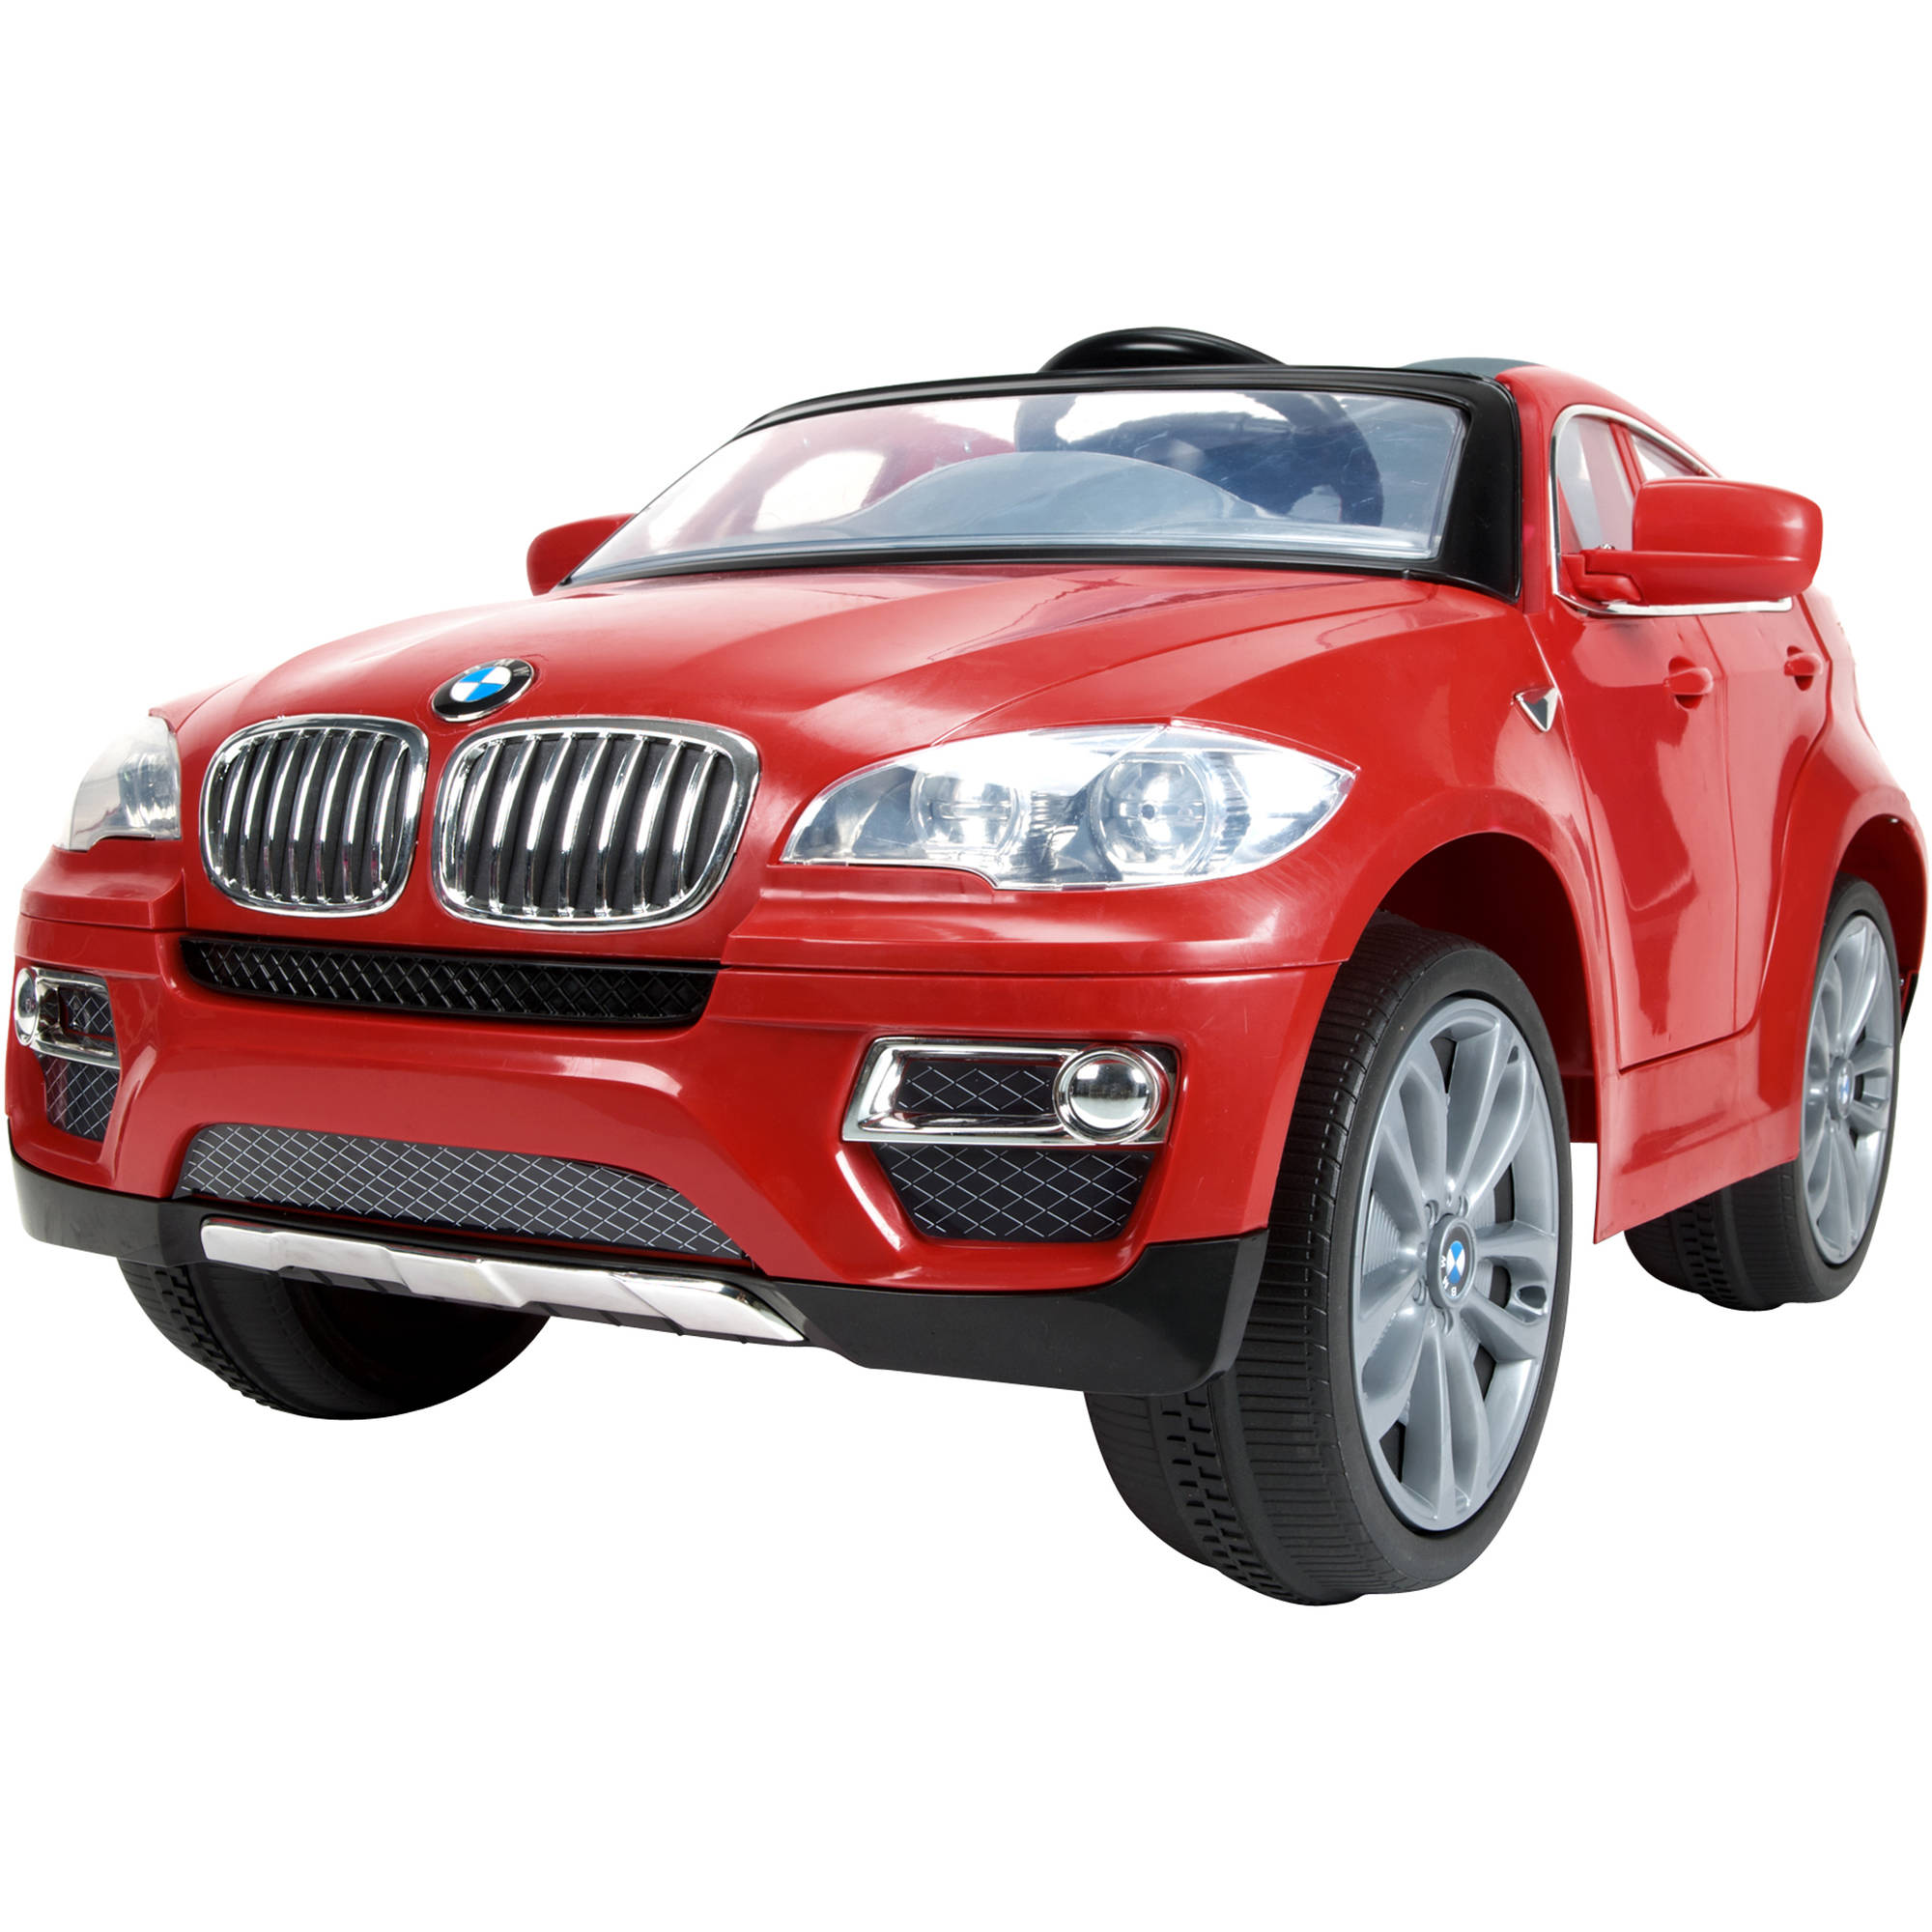 BMW X6 6 Volt Electric Battery Powered Ride Toy by Huffy